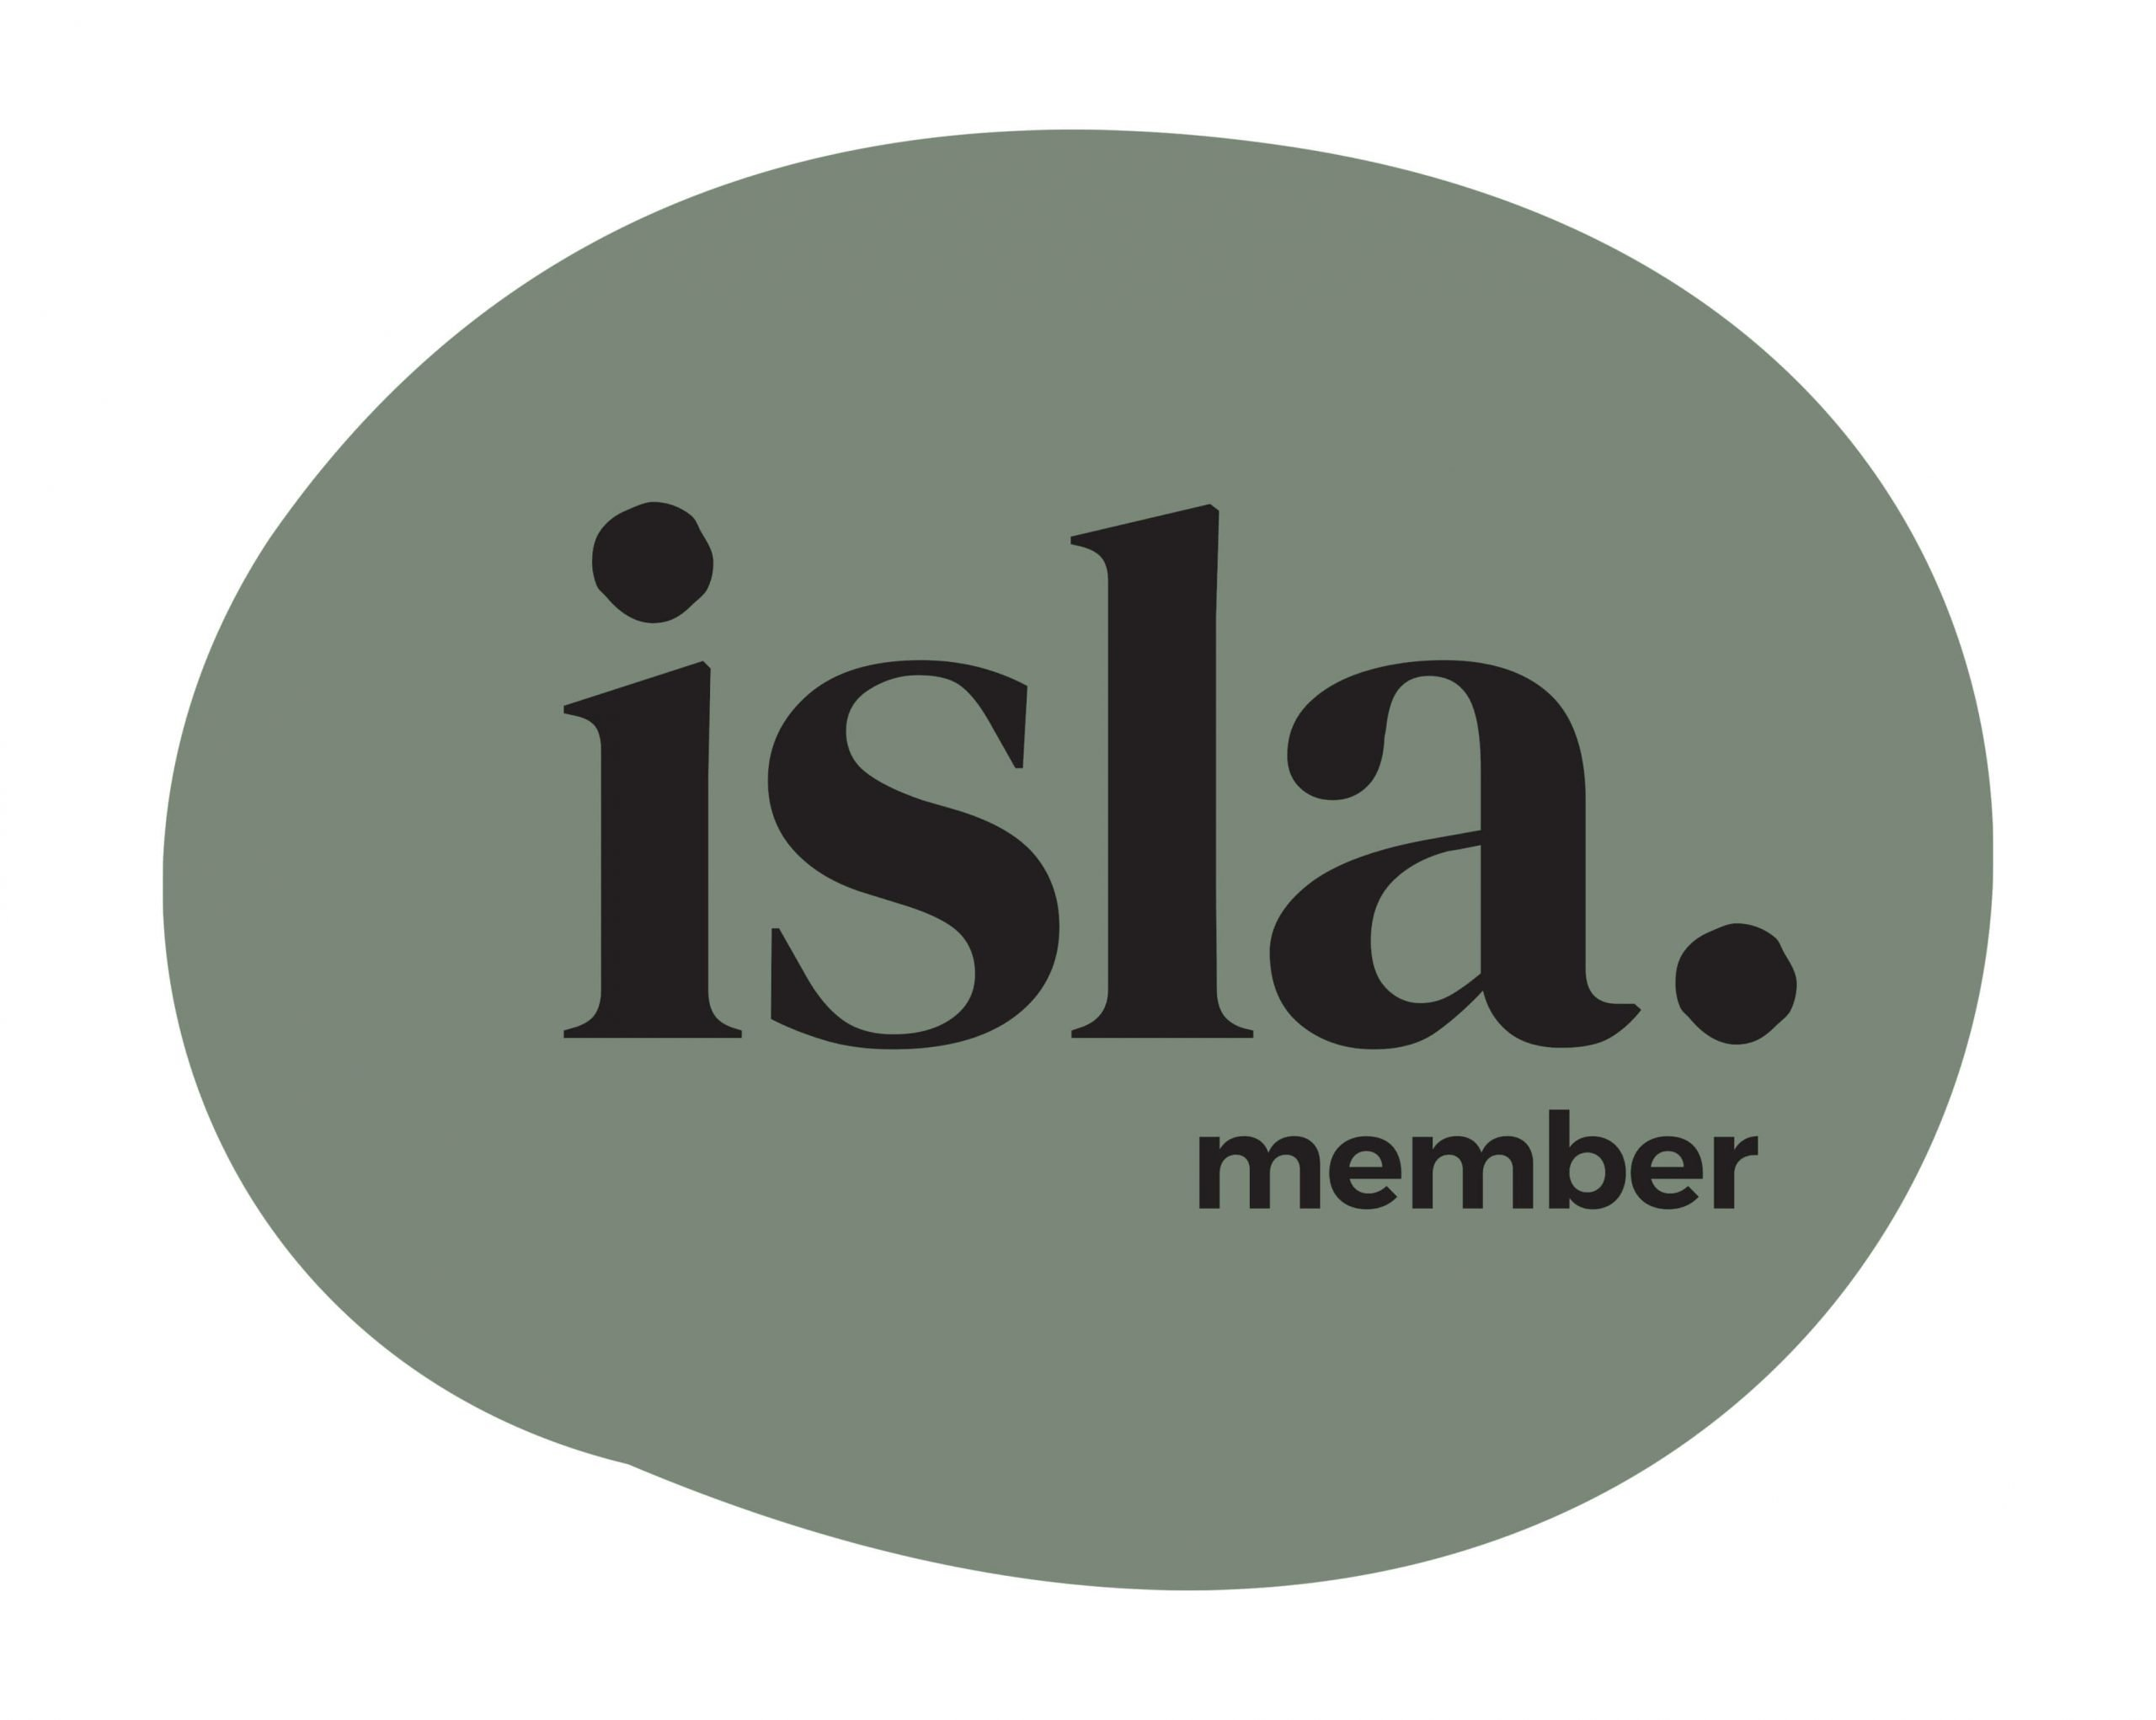 We've partnered with ISLA to help focus on sustainability